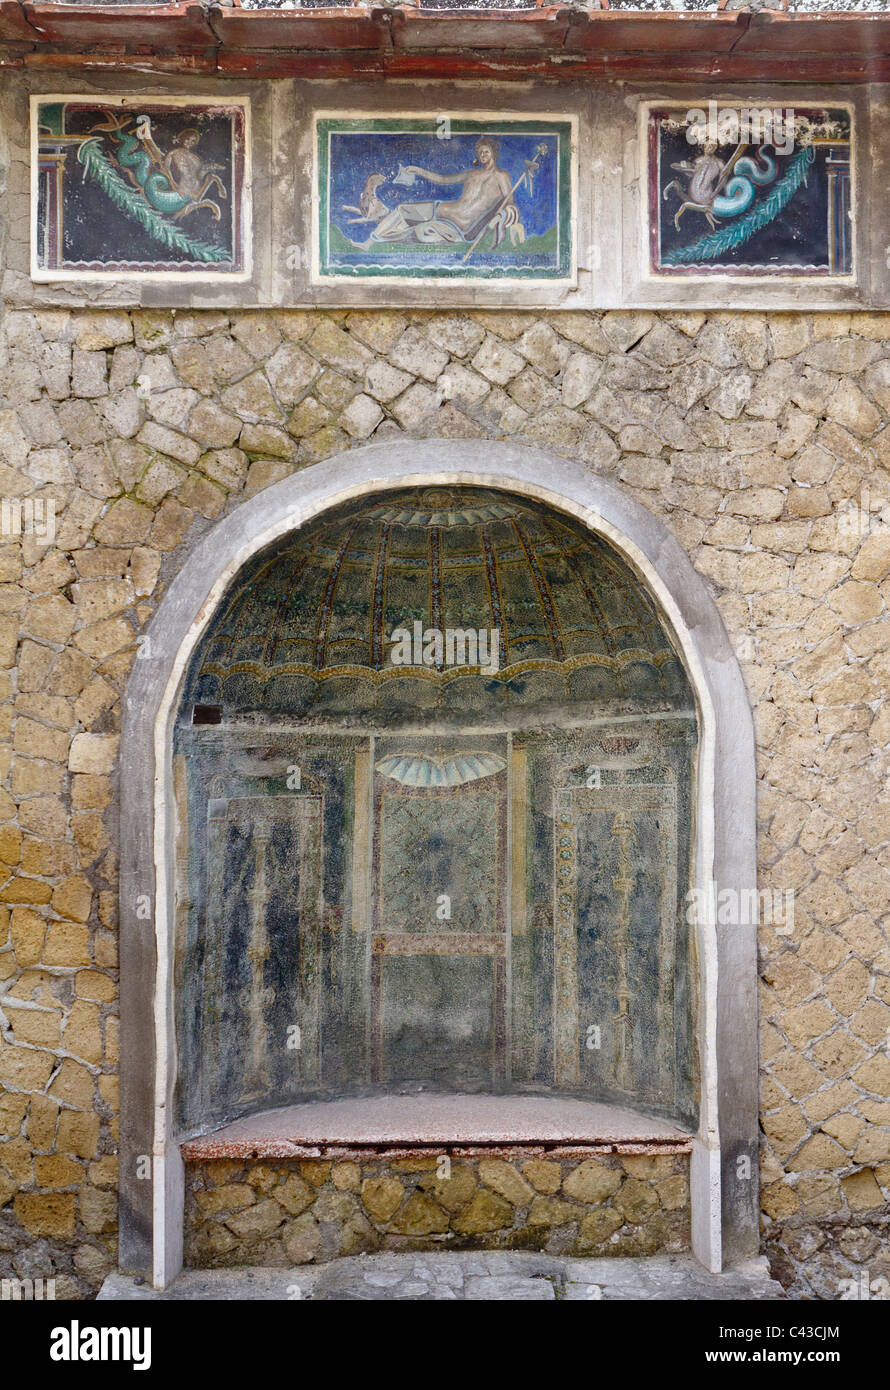 Ancient Roman wall built of volcanic tufo with murals depicting